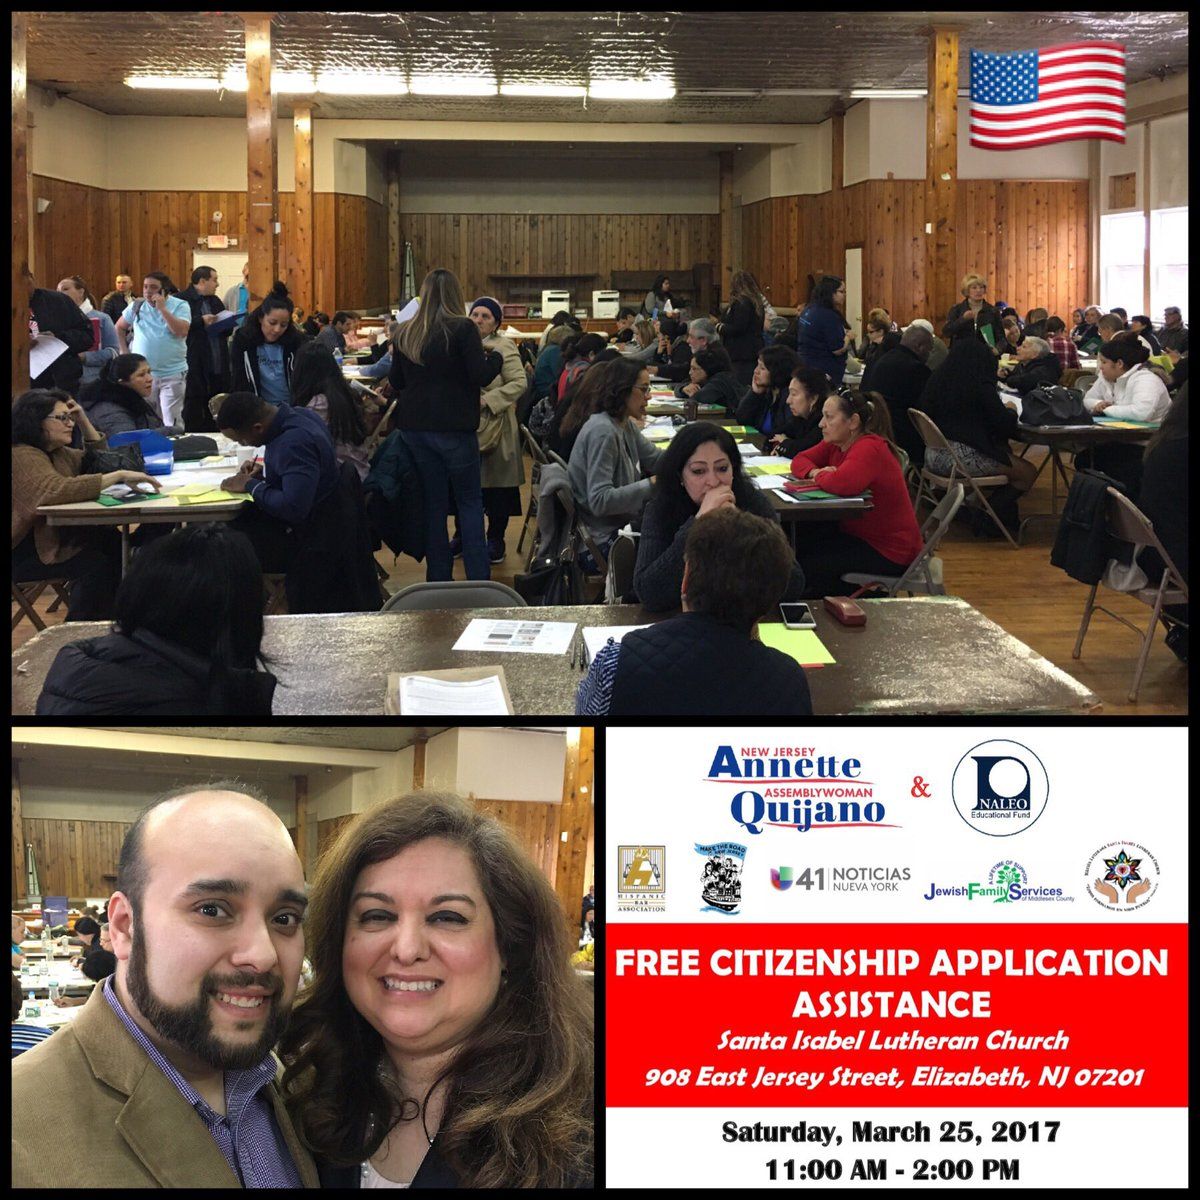 Huge THANKS to NJ Asw. @AnnetteQuijano, partners, &amp; volunteers for successful #citizenship workshop yesterday. #takeaction  @NALEO<br>http://pic.twitter.com/asWYwzi6rt